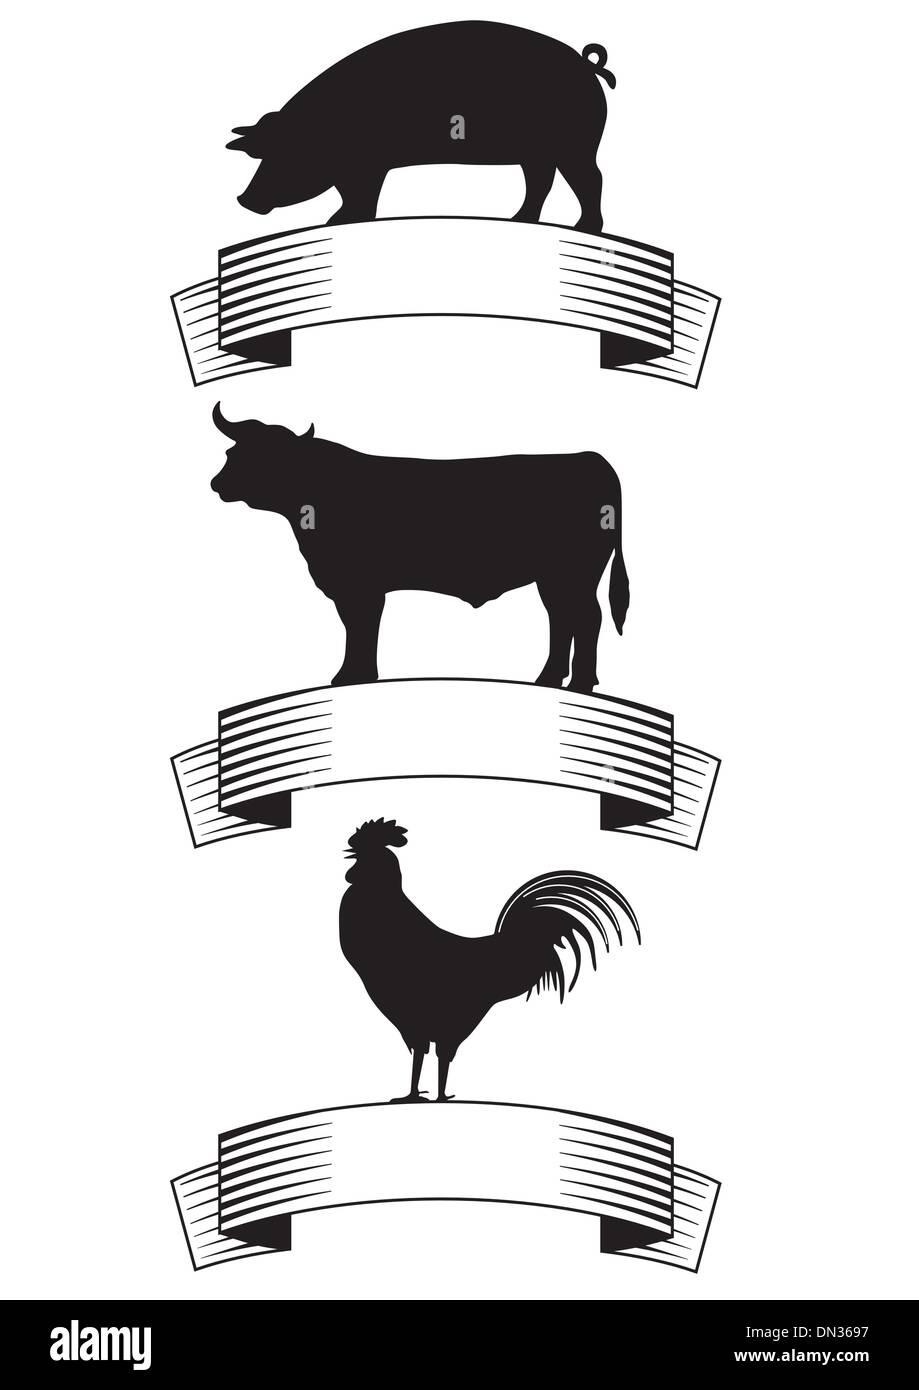 Beef, pork, poultry - Stock Vector